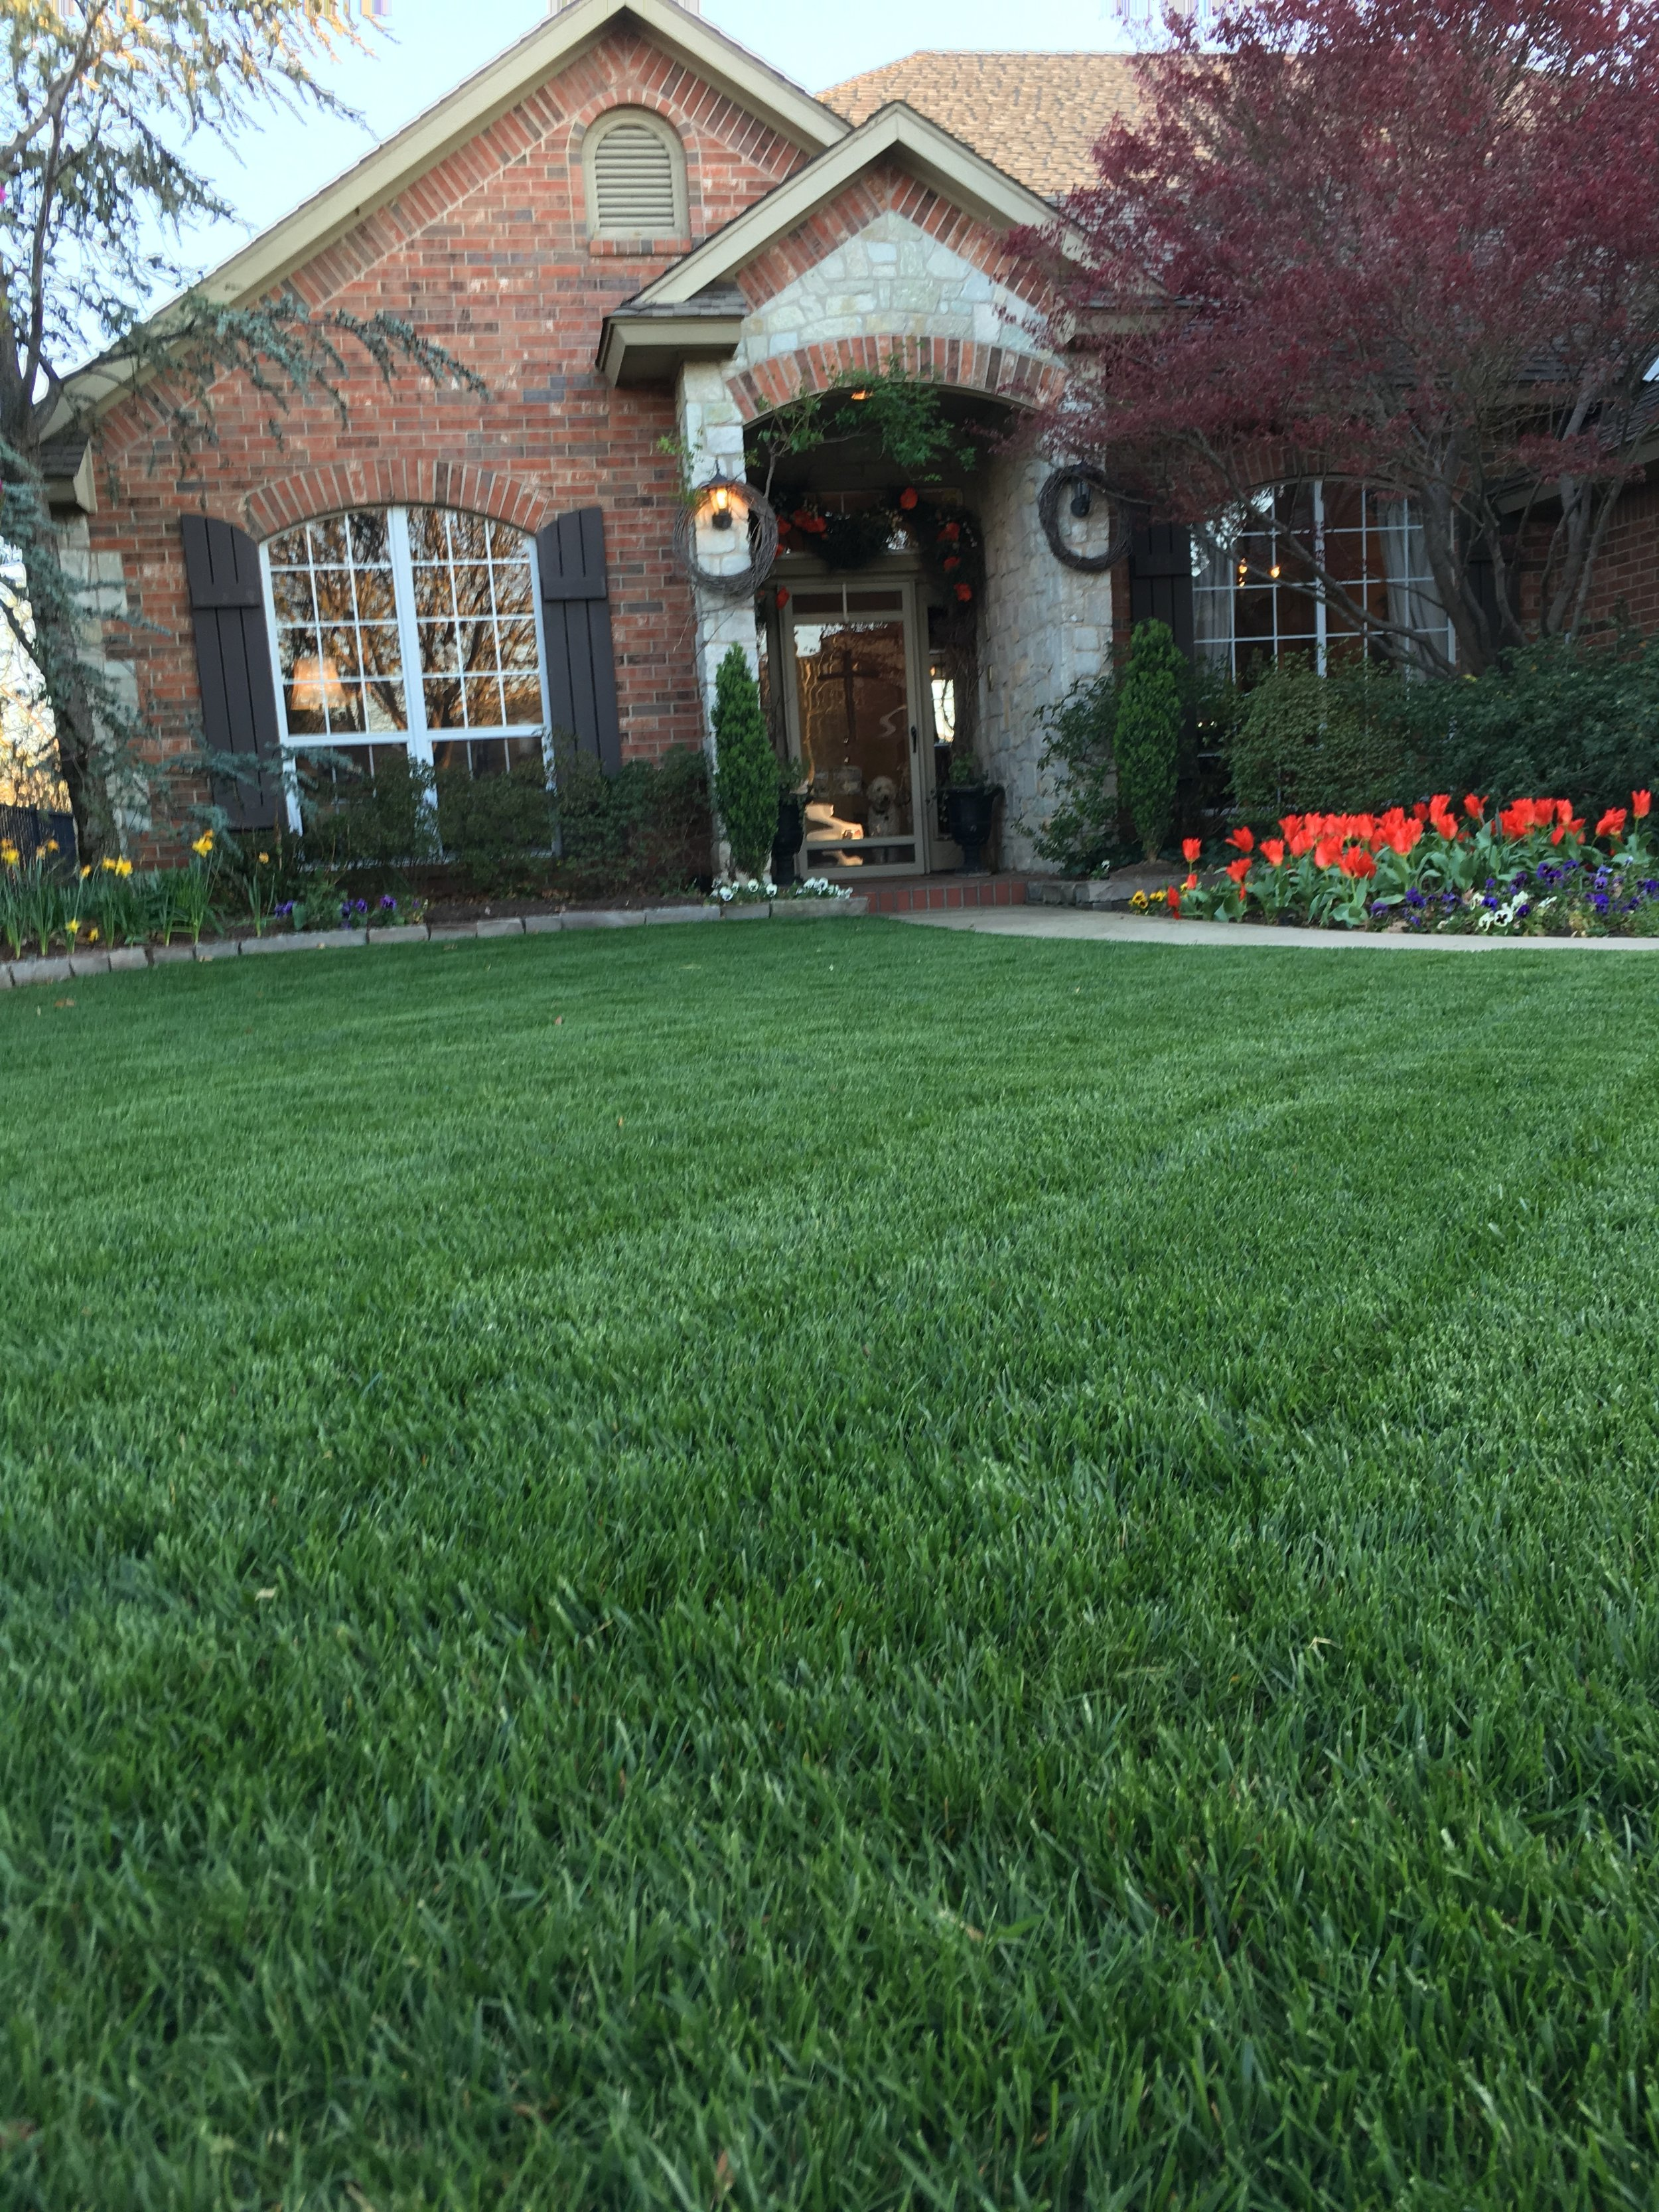 Fall seeded fescue lawns result in the best cool season lawns next spring.